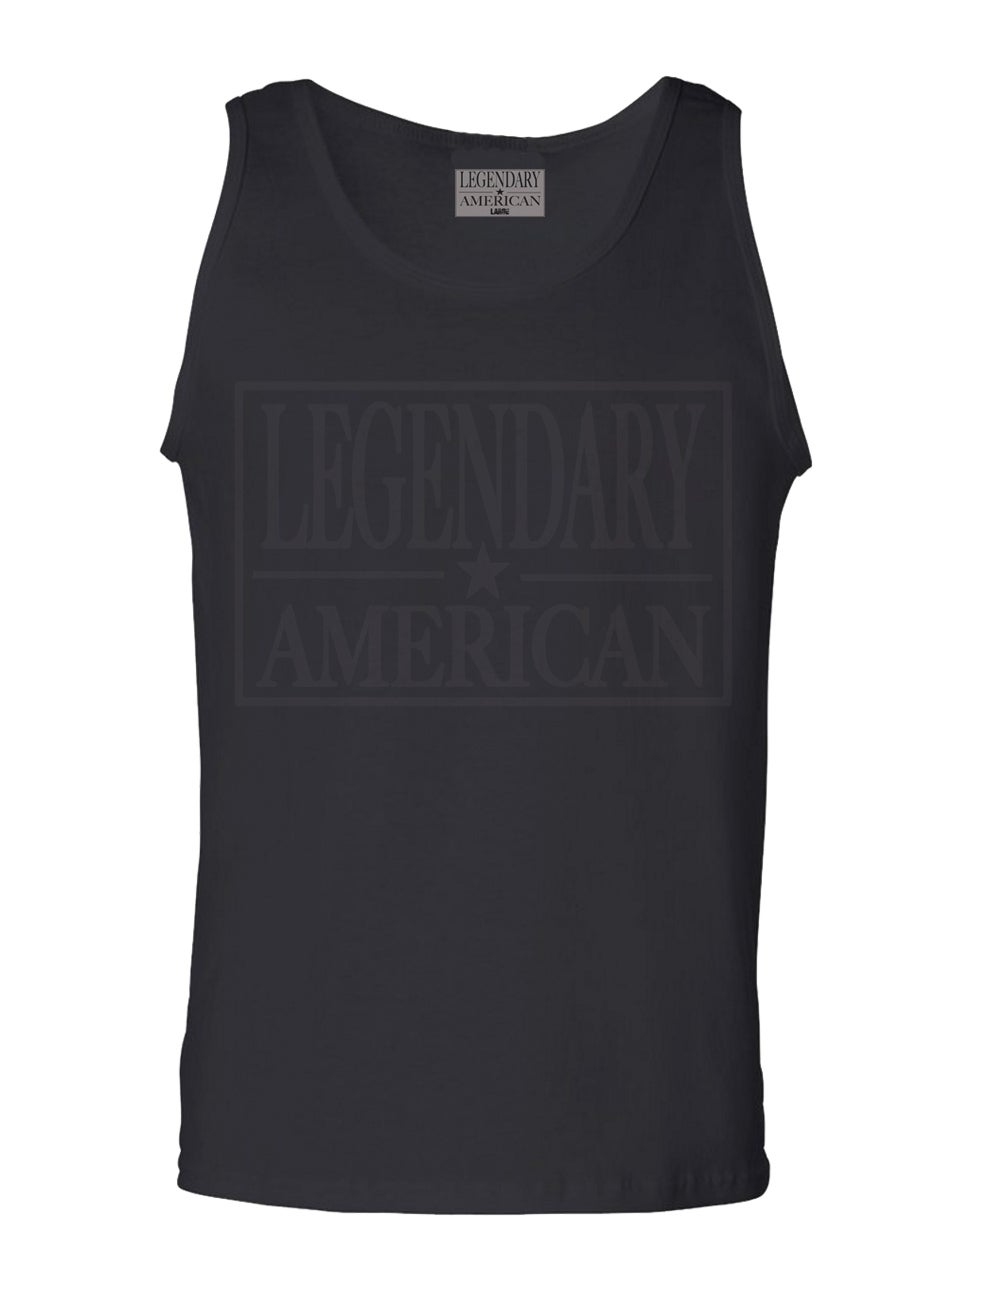 Image of Legendary American Patch Tank all black